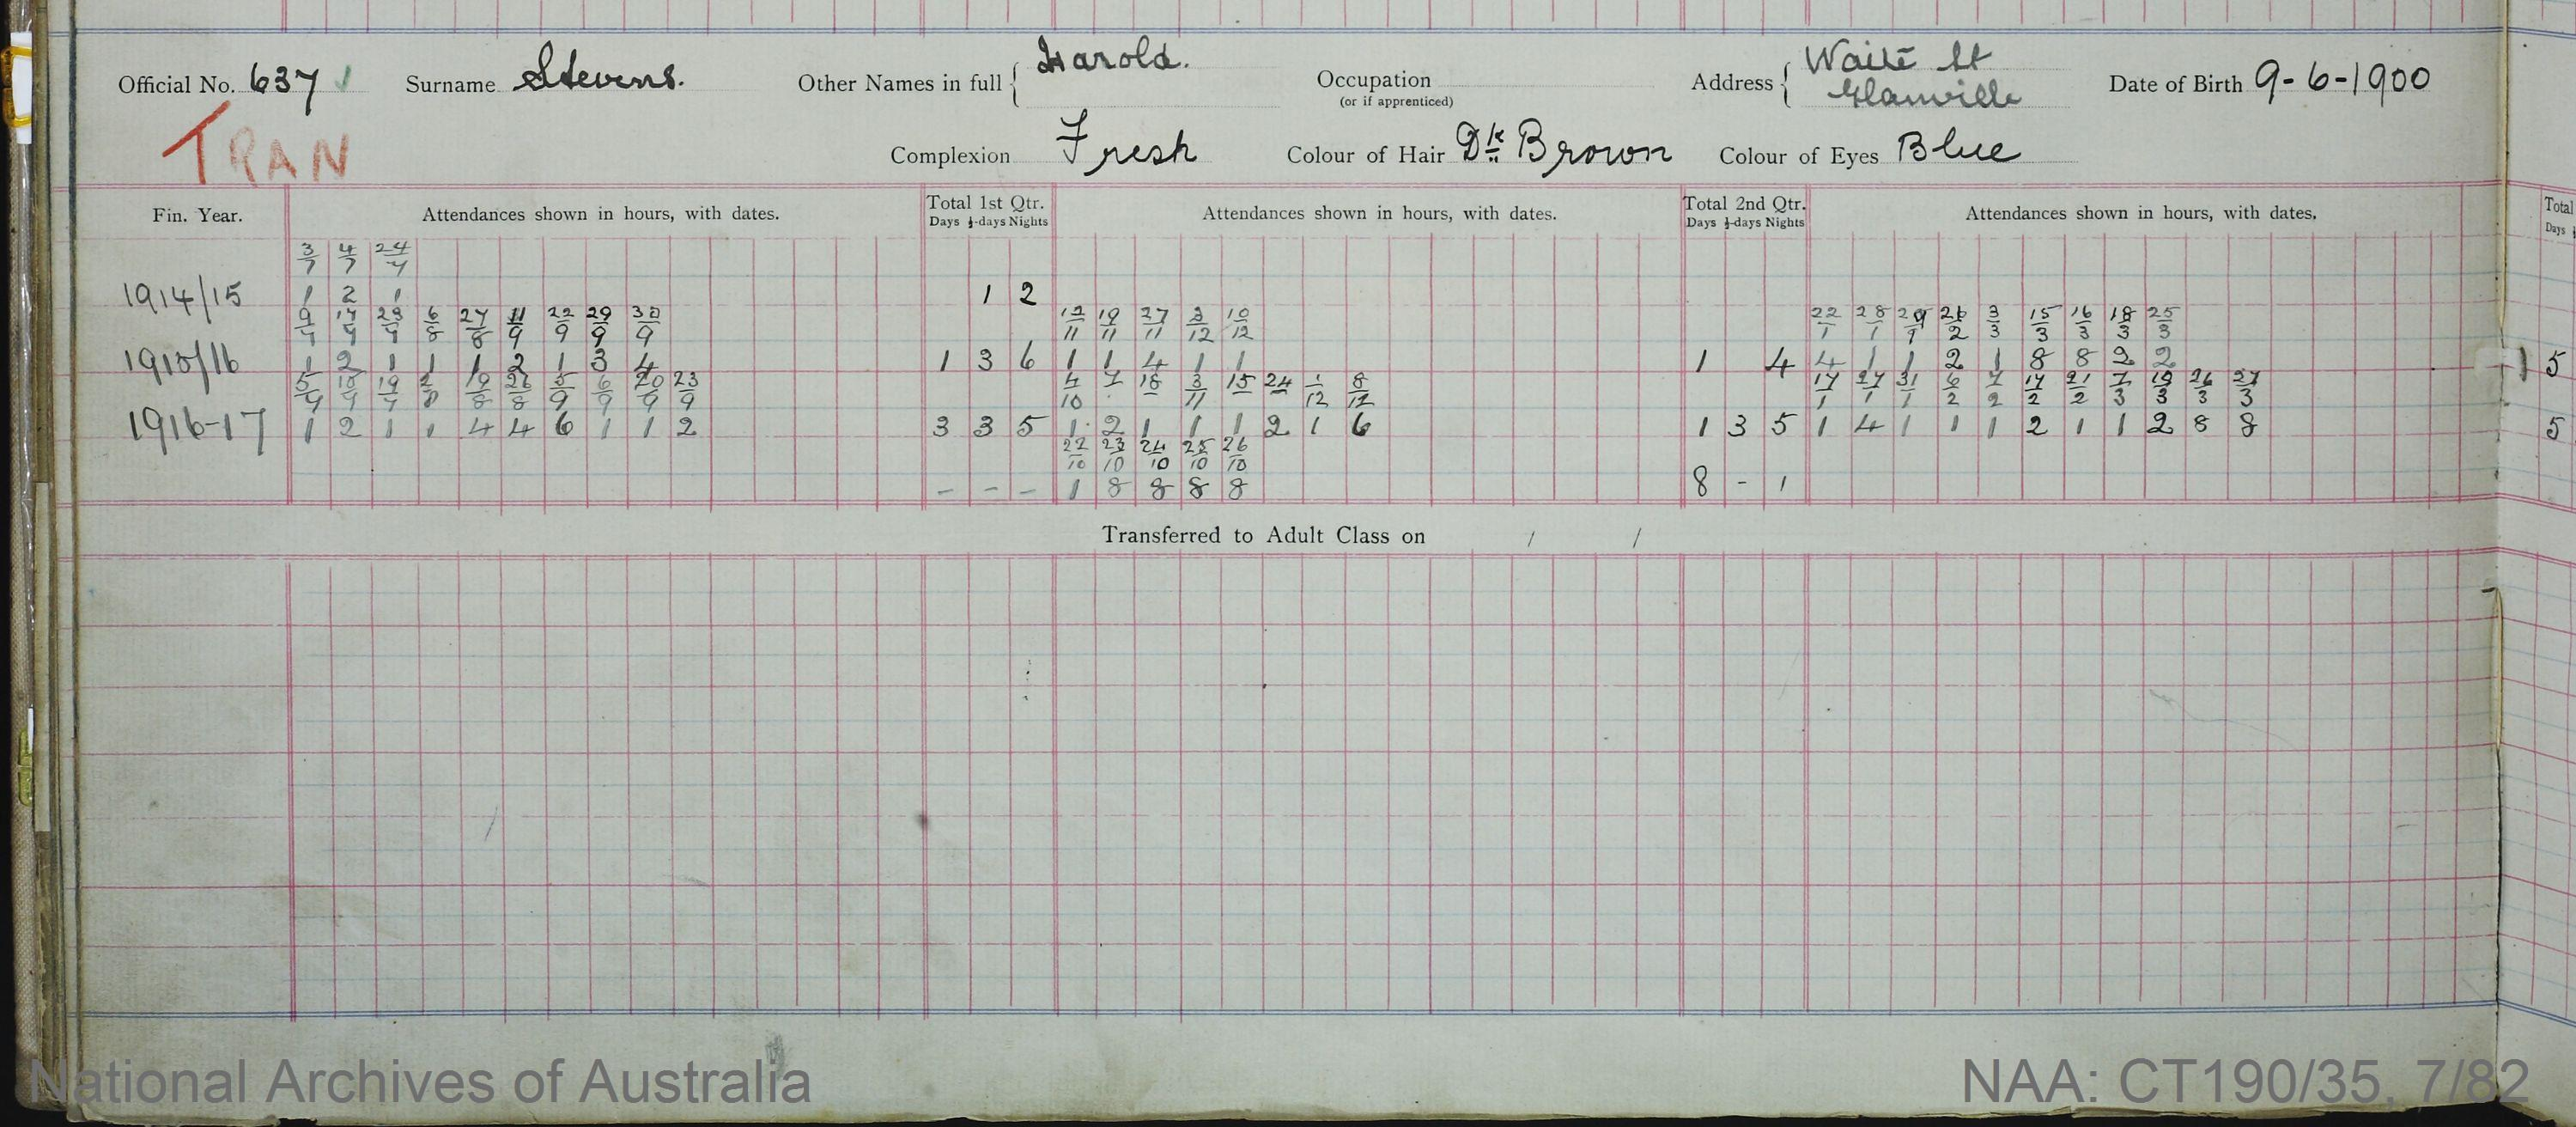 SURNAME - STEVENS;  GIVEN NAME(S) - Harold;  OFFICIAL NUMBER - 637;  DATE OF BIRTH - 9 June 1900;  PLACE OF BIRTH - [Unknown];  NEXT OF KIN - [Unknown];  SERVICE/STATION - South Australia;  REGISTRATION DATE - 24 February 1914